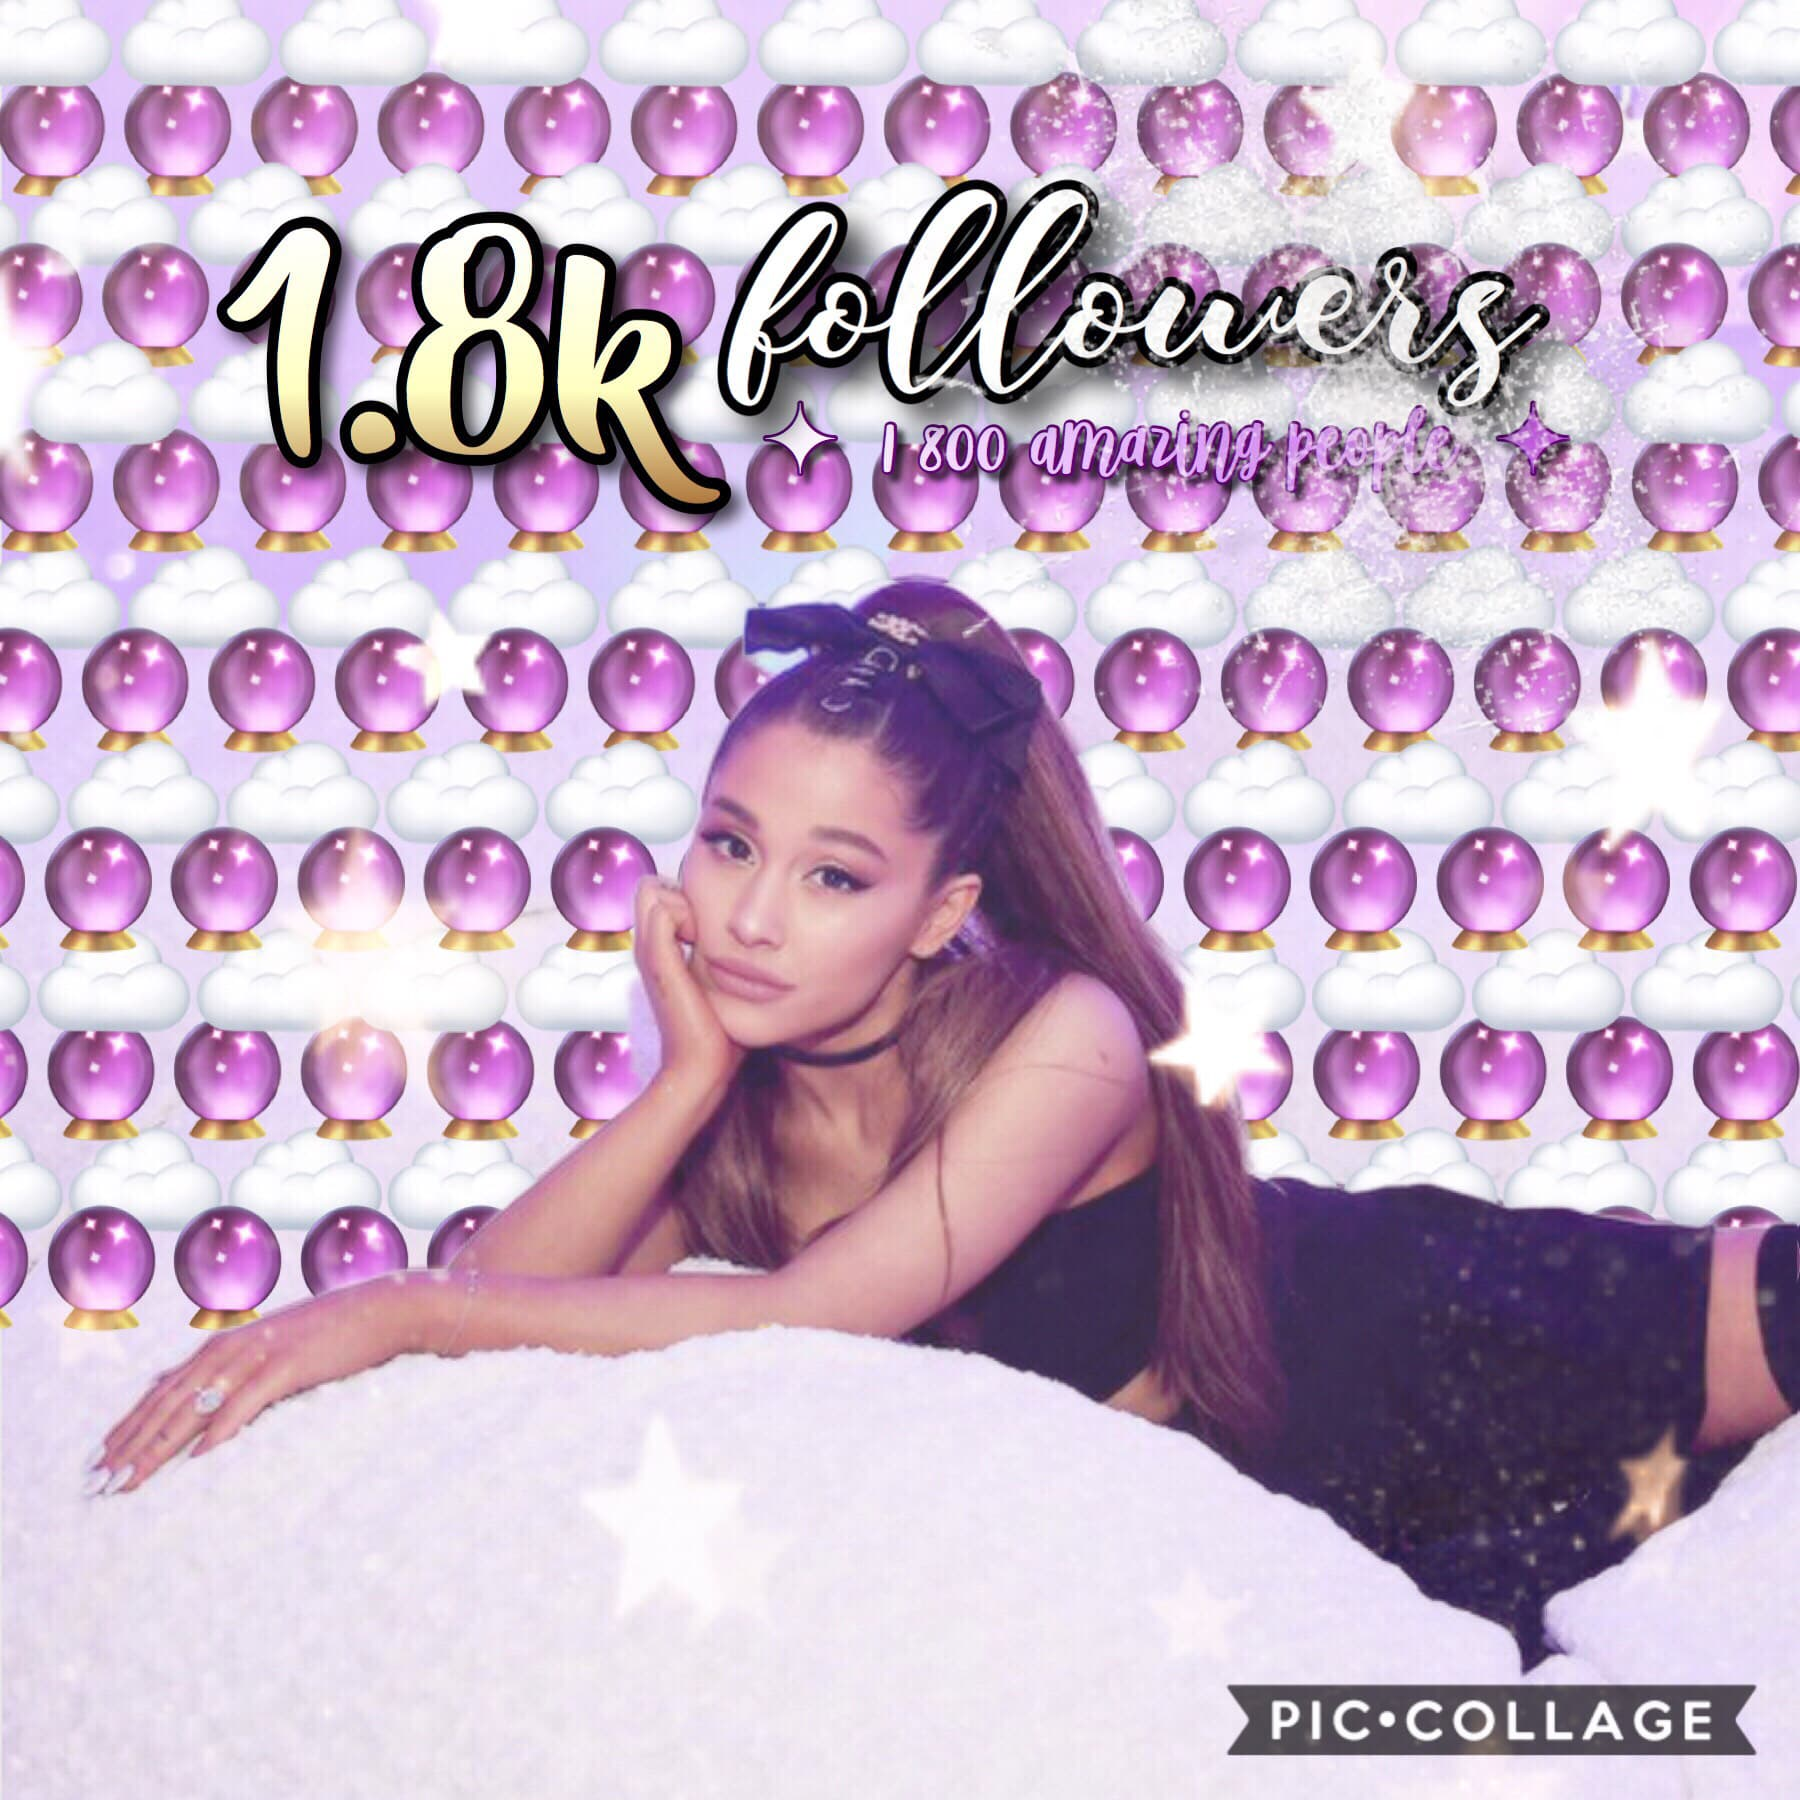 oh my gooossshhhh tysm guyyysss!🎉we hit it! thanks for surprising me, 'cause girl, IT WORKEDDD 😱🤣 sorry for this awful edit😣 tho STILL, ITS IN THE THEME🔮👌 1 800+ amazing people took a moment to press that follow button and to them all, I heart you so much